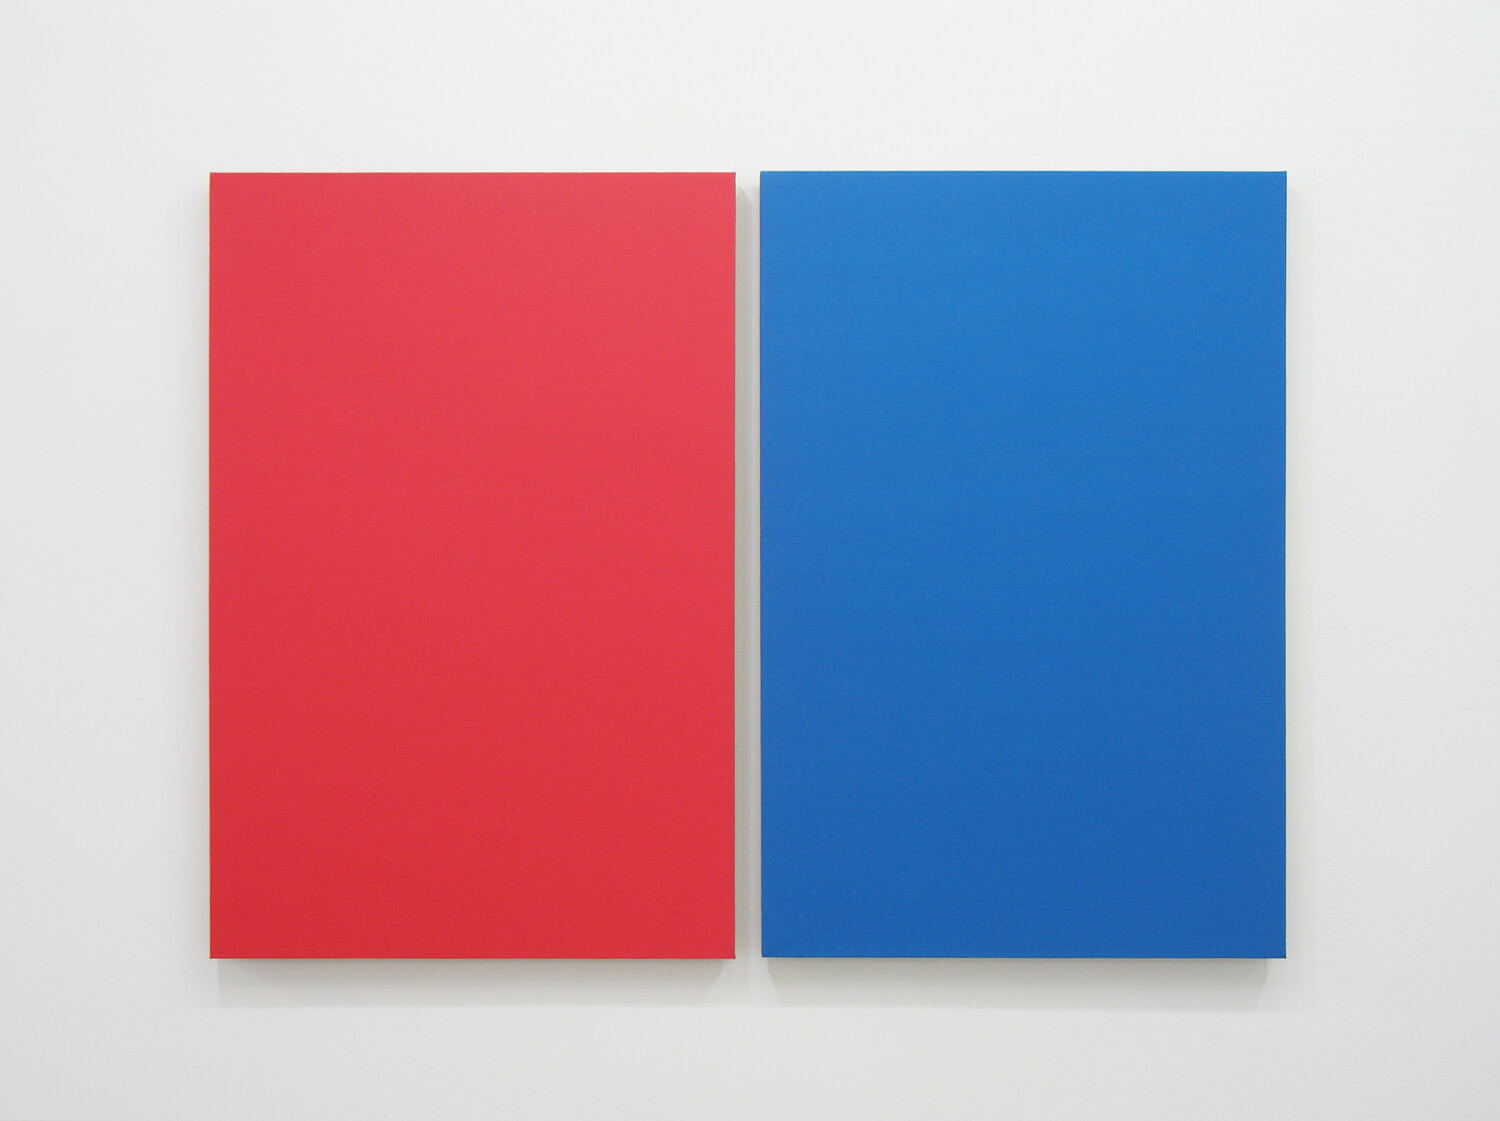 Text No. 888 / oil, wax on linen, 910 x 1242 x 40 mm, 2011 (overall)